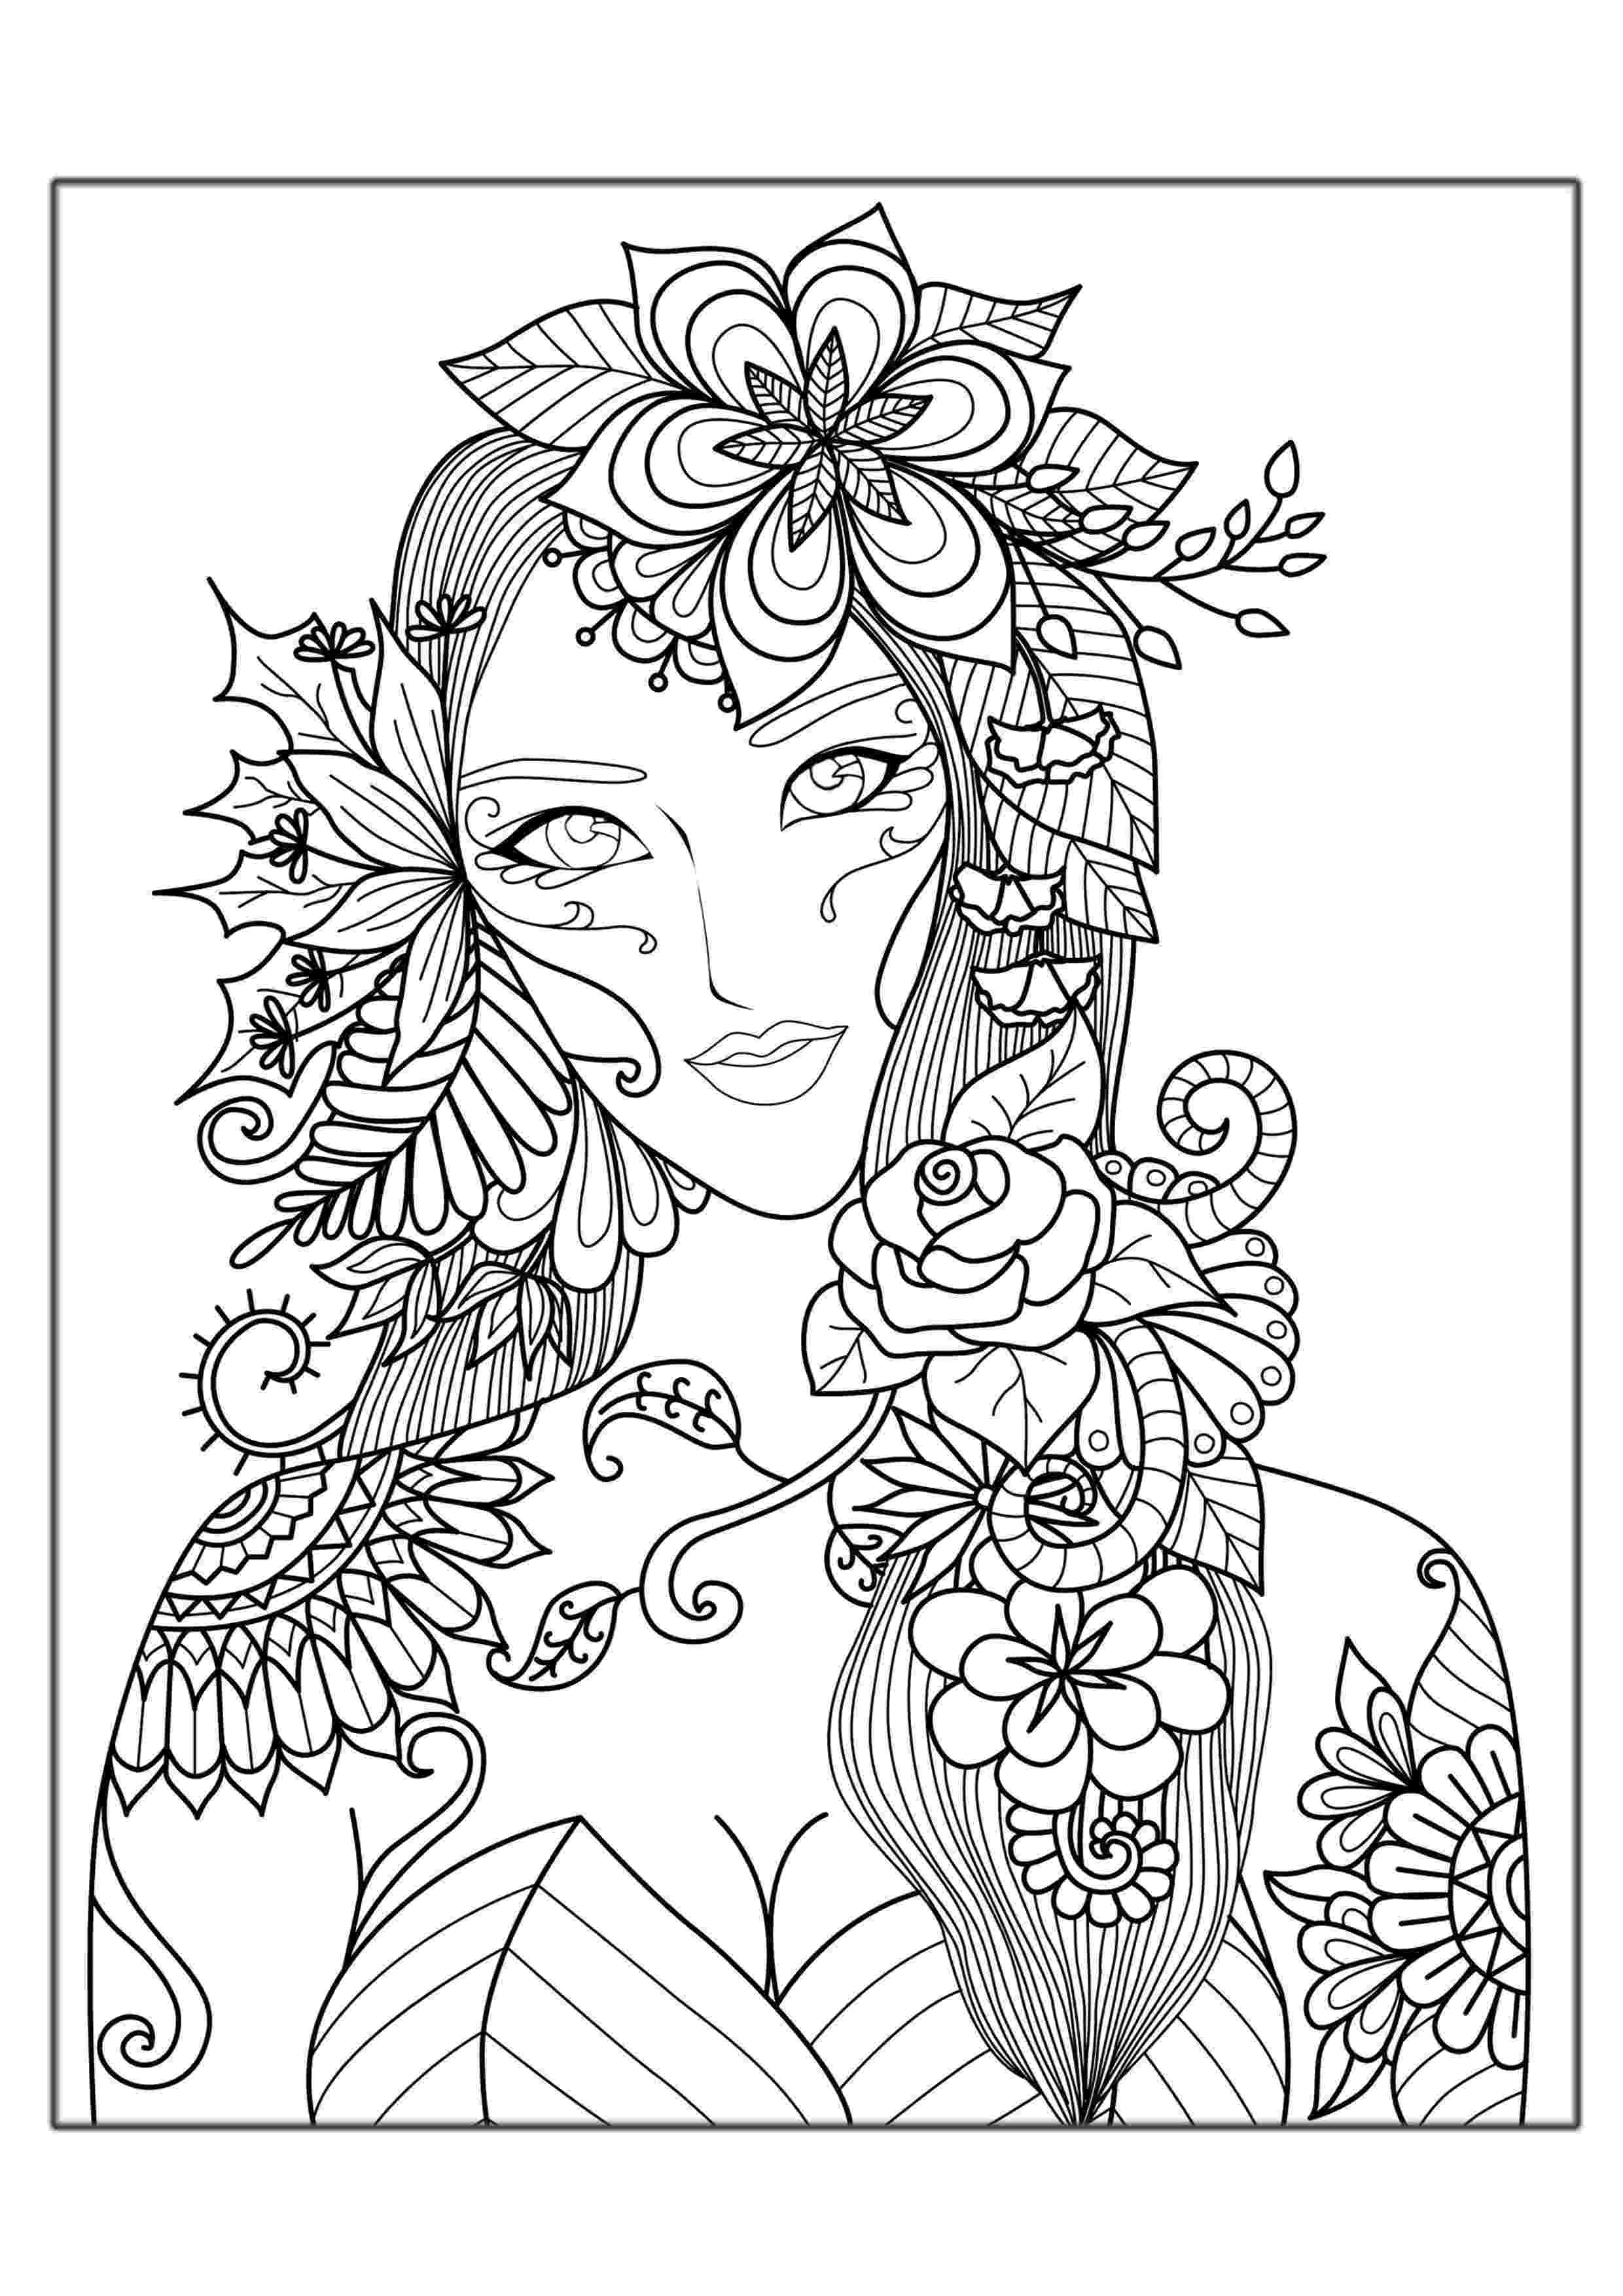 printable coloring pages for adults stress pin on coloring pages printable for adults coloring stress pages